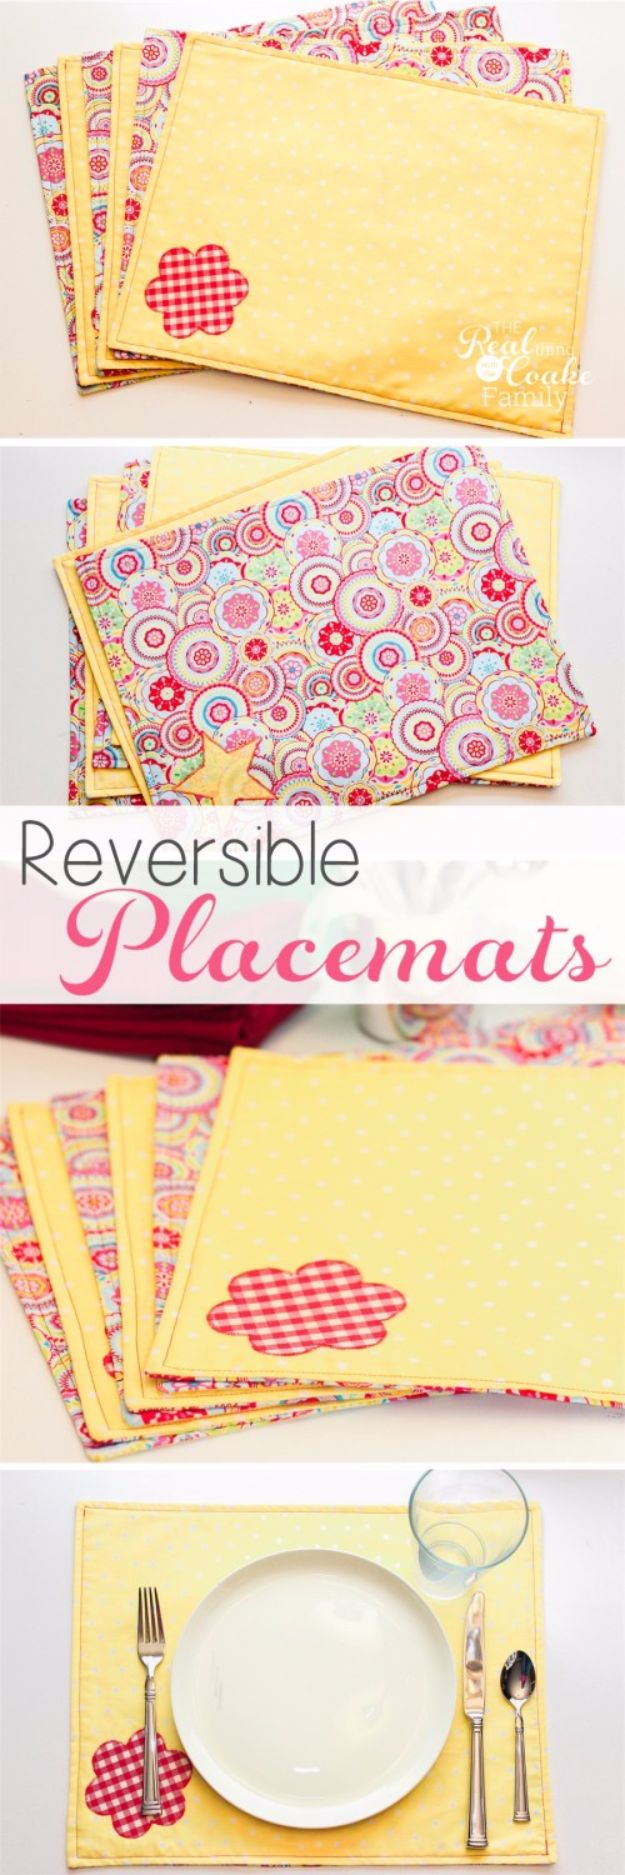 DIY Napkins and Placemats - Reversible Placemats - Easy Sewing Projects, Cute No Sew Ideas and Creative Ways To Make a Napkin or Placemat - Quick DIY Gift Ideas for Friends, Family and Awesome Home Decor - Cheap Do It Yourself Kitchen Decor - Simple Wedding Gifts You Can Make On A Budget